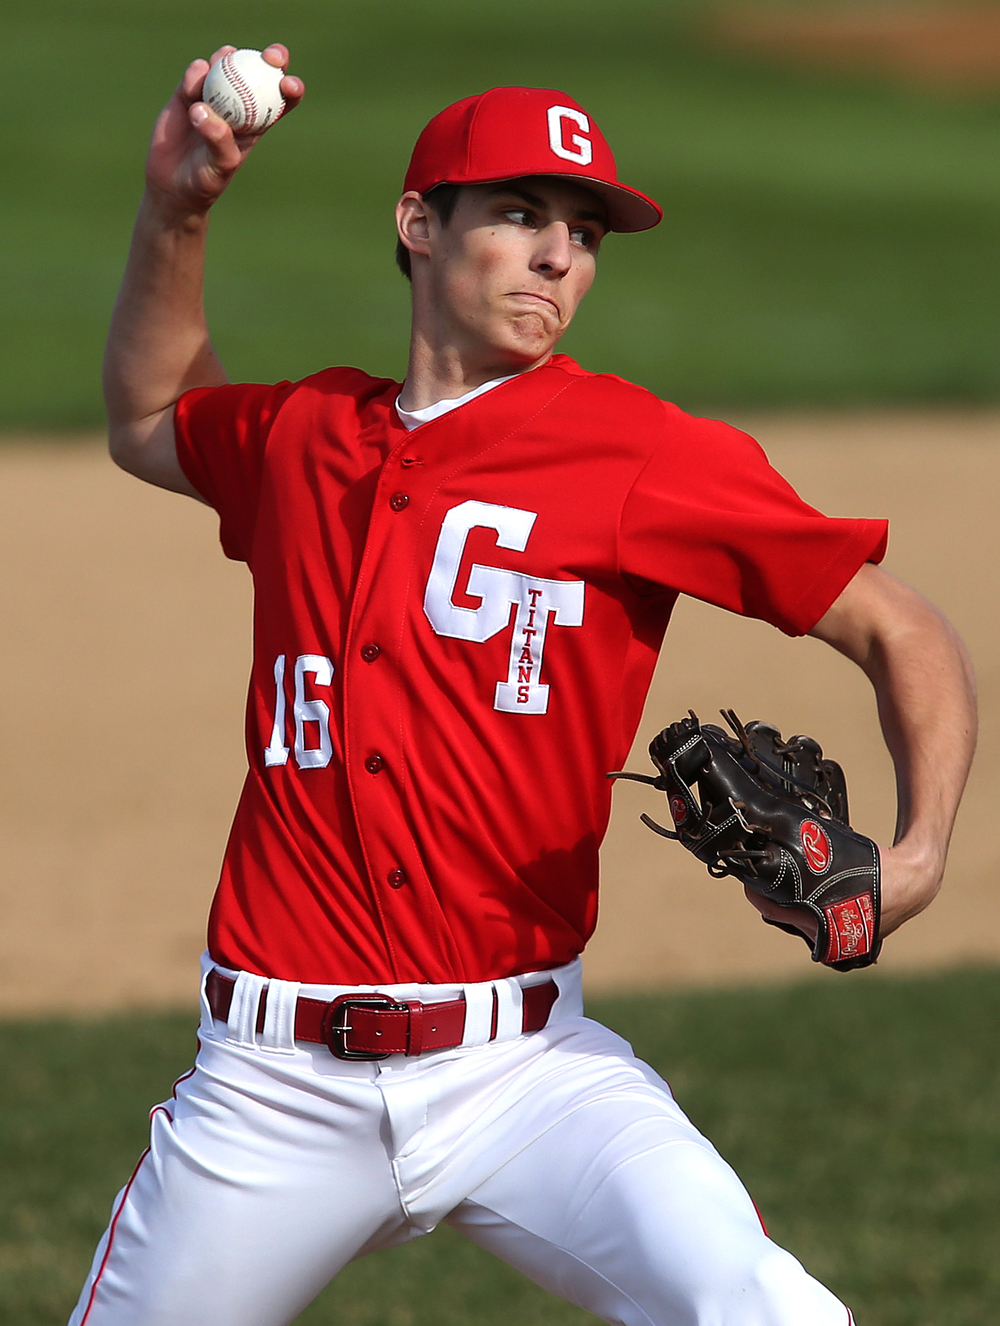 Glenwood pitcher Jacob Maton received the loss on Tuesday. David Spencer/The State Journal Register